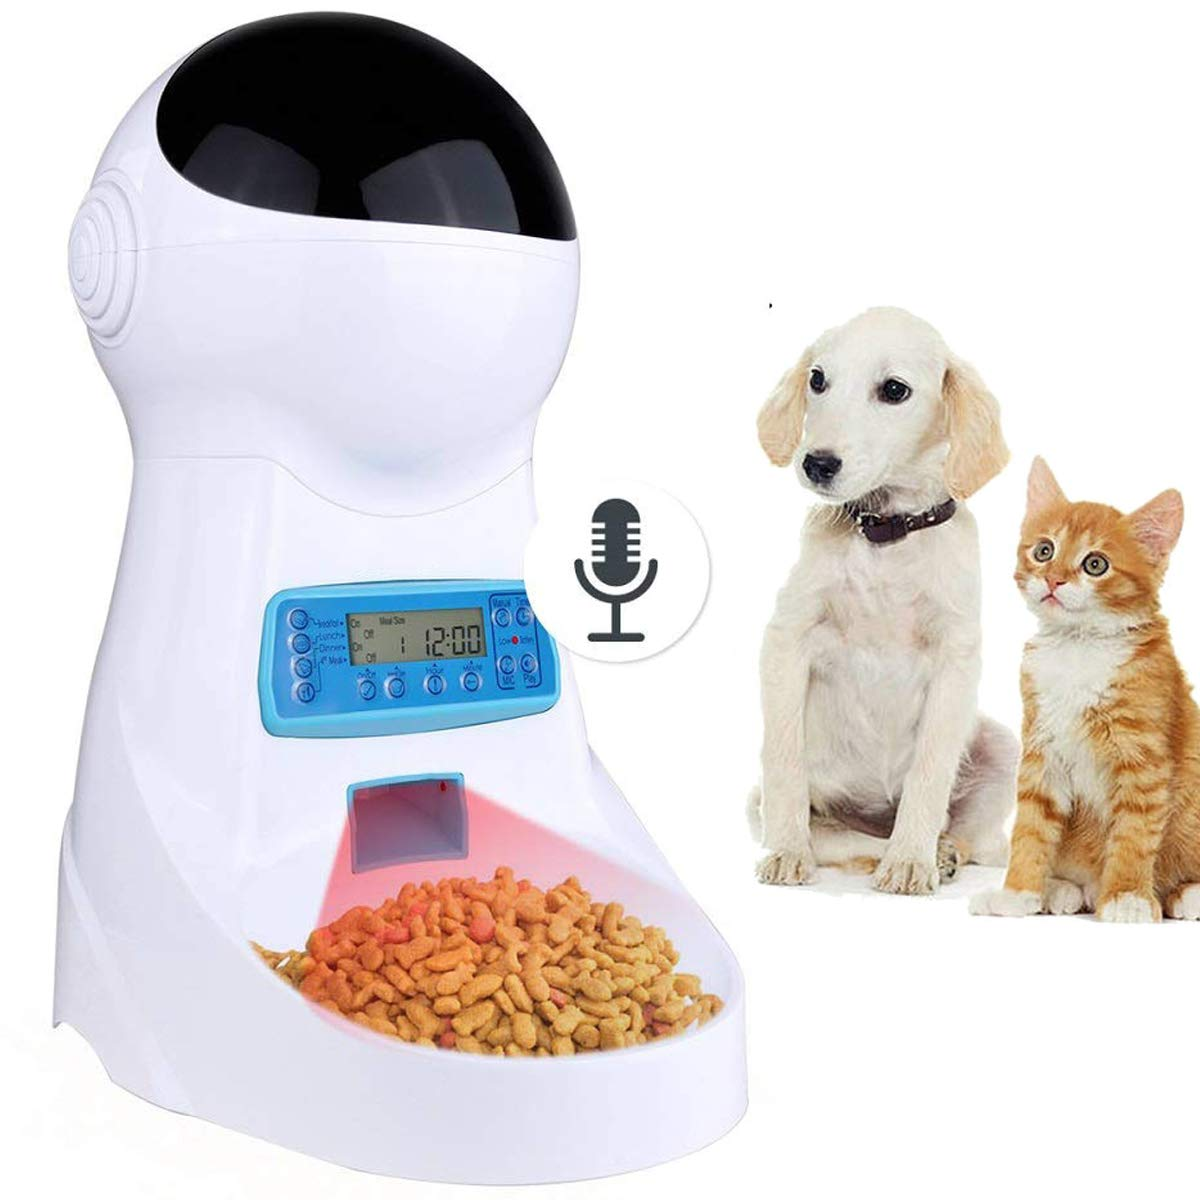 Sailnovo Automatic Cat Feeder Pet Dog Feeder Food Dispenser with Timer Programmable Voice Recorder and Portion Control, 4L Auto Pet Feeder for Cats Dogs by Sailnovo